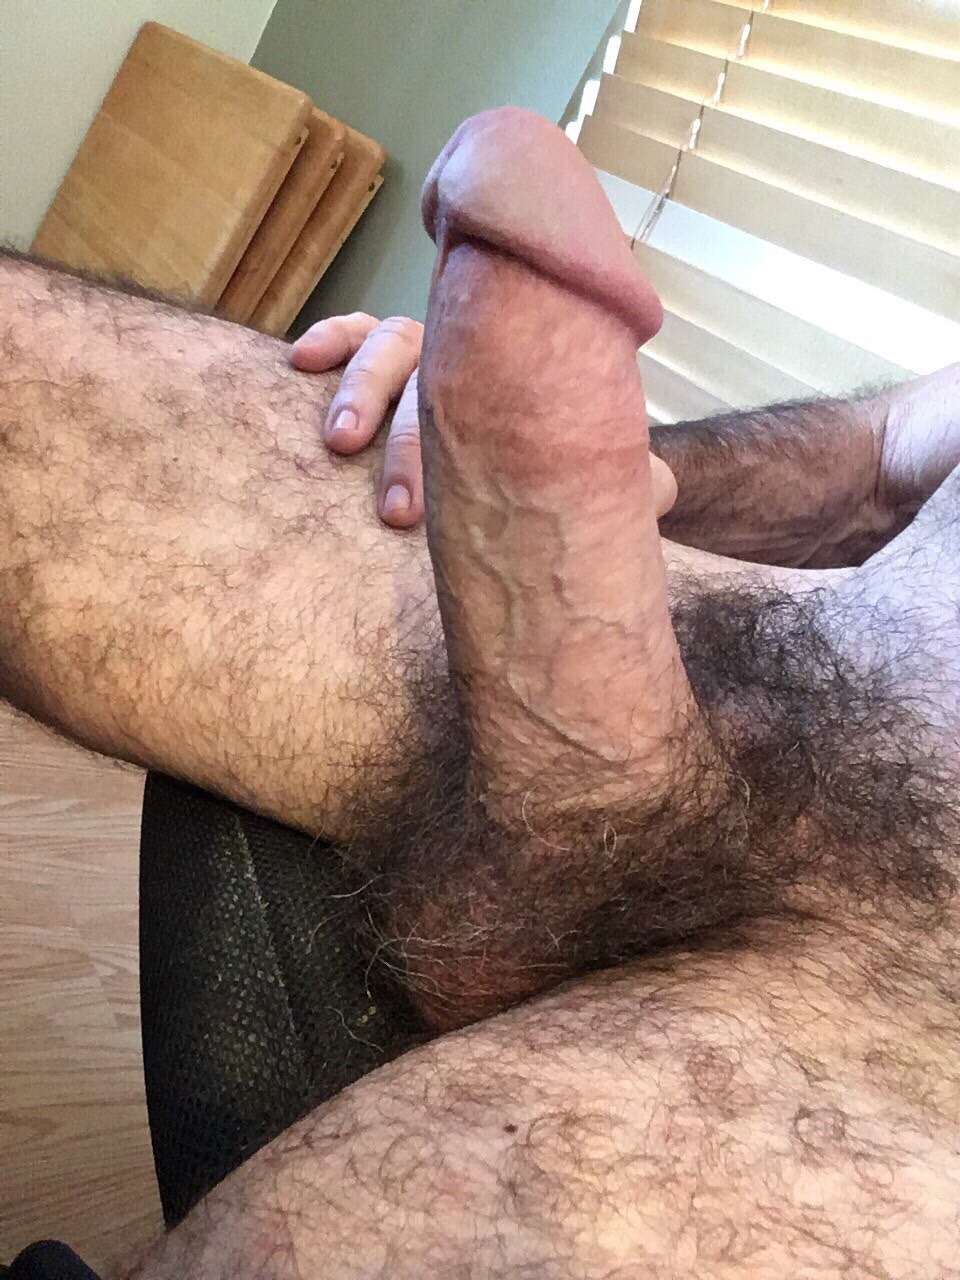 Erected Huge Cock And Hairy Balls